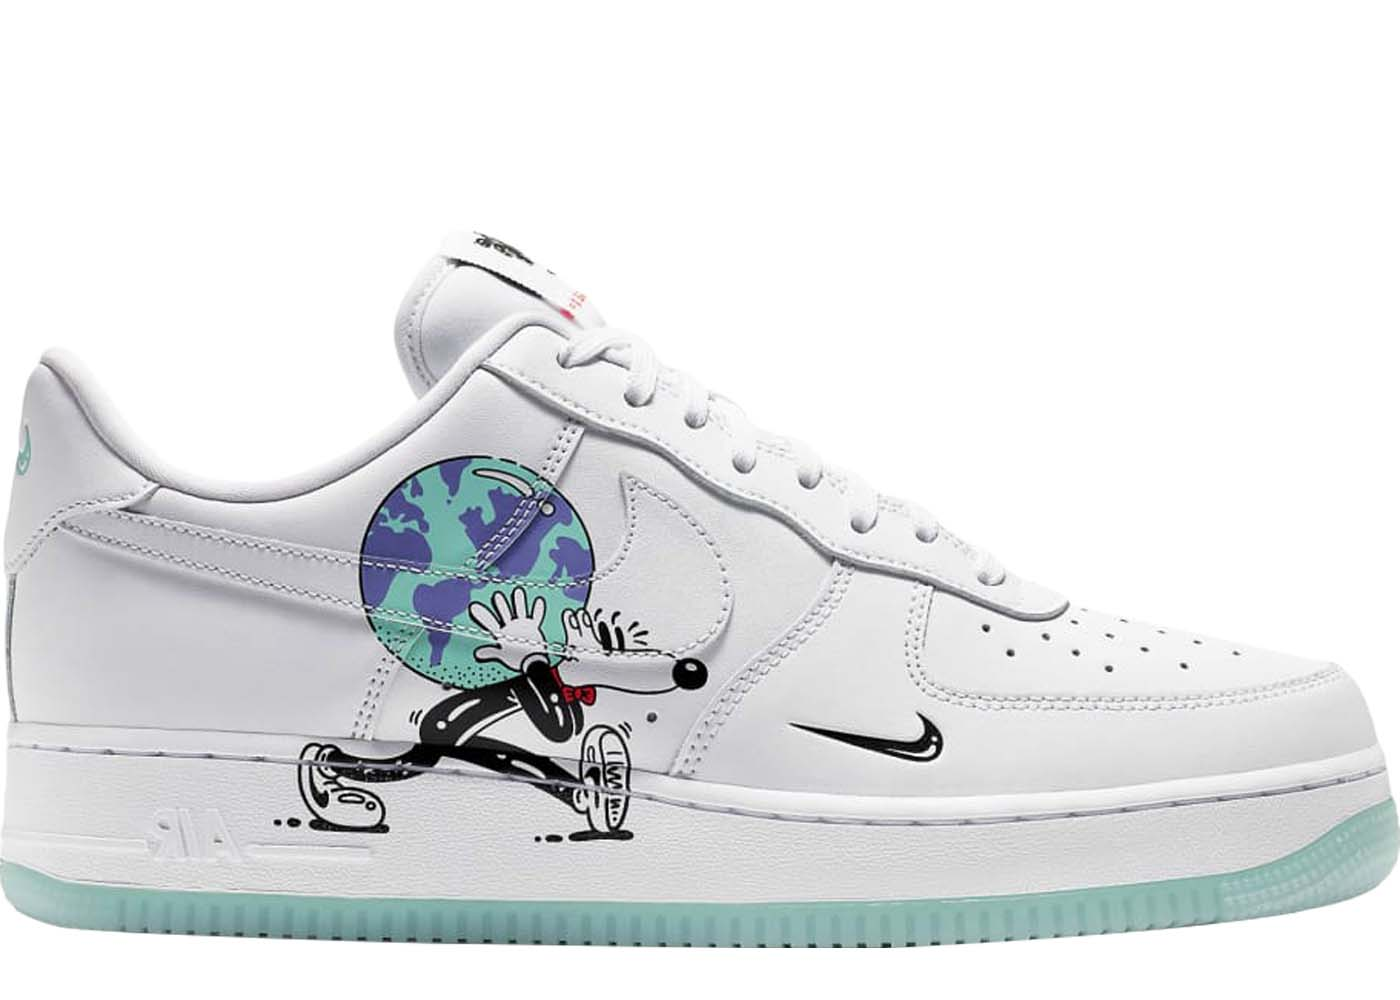 81944ffd2283 Air Force 1 Flyleather Steve Harrington Earth Day (2019)